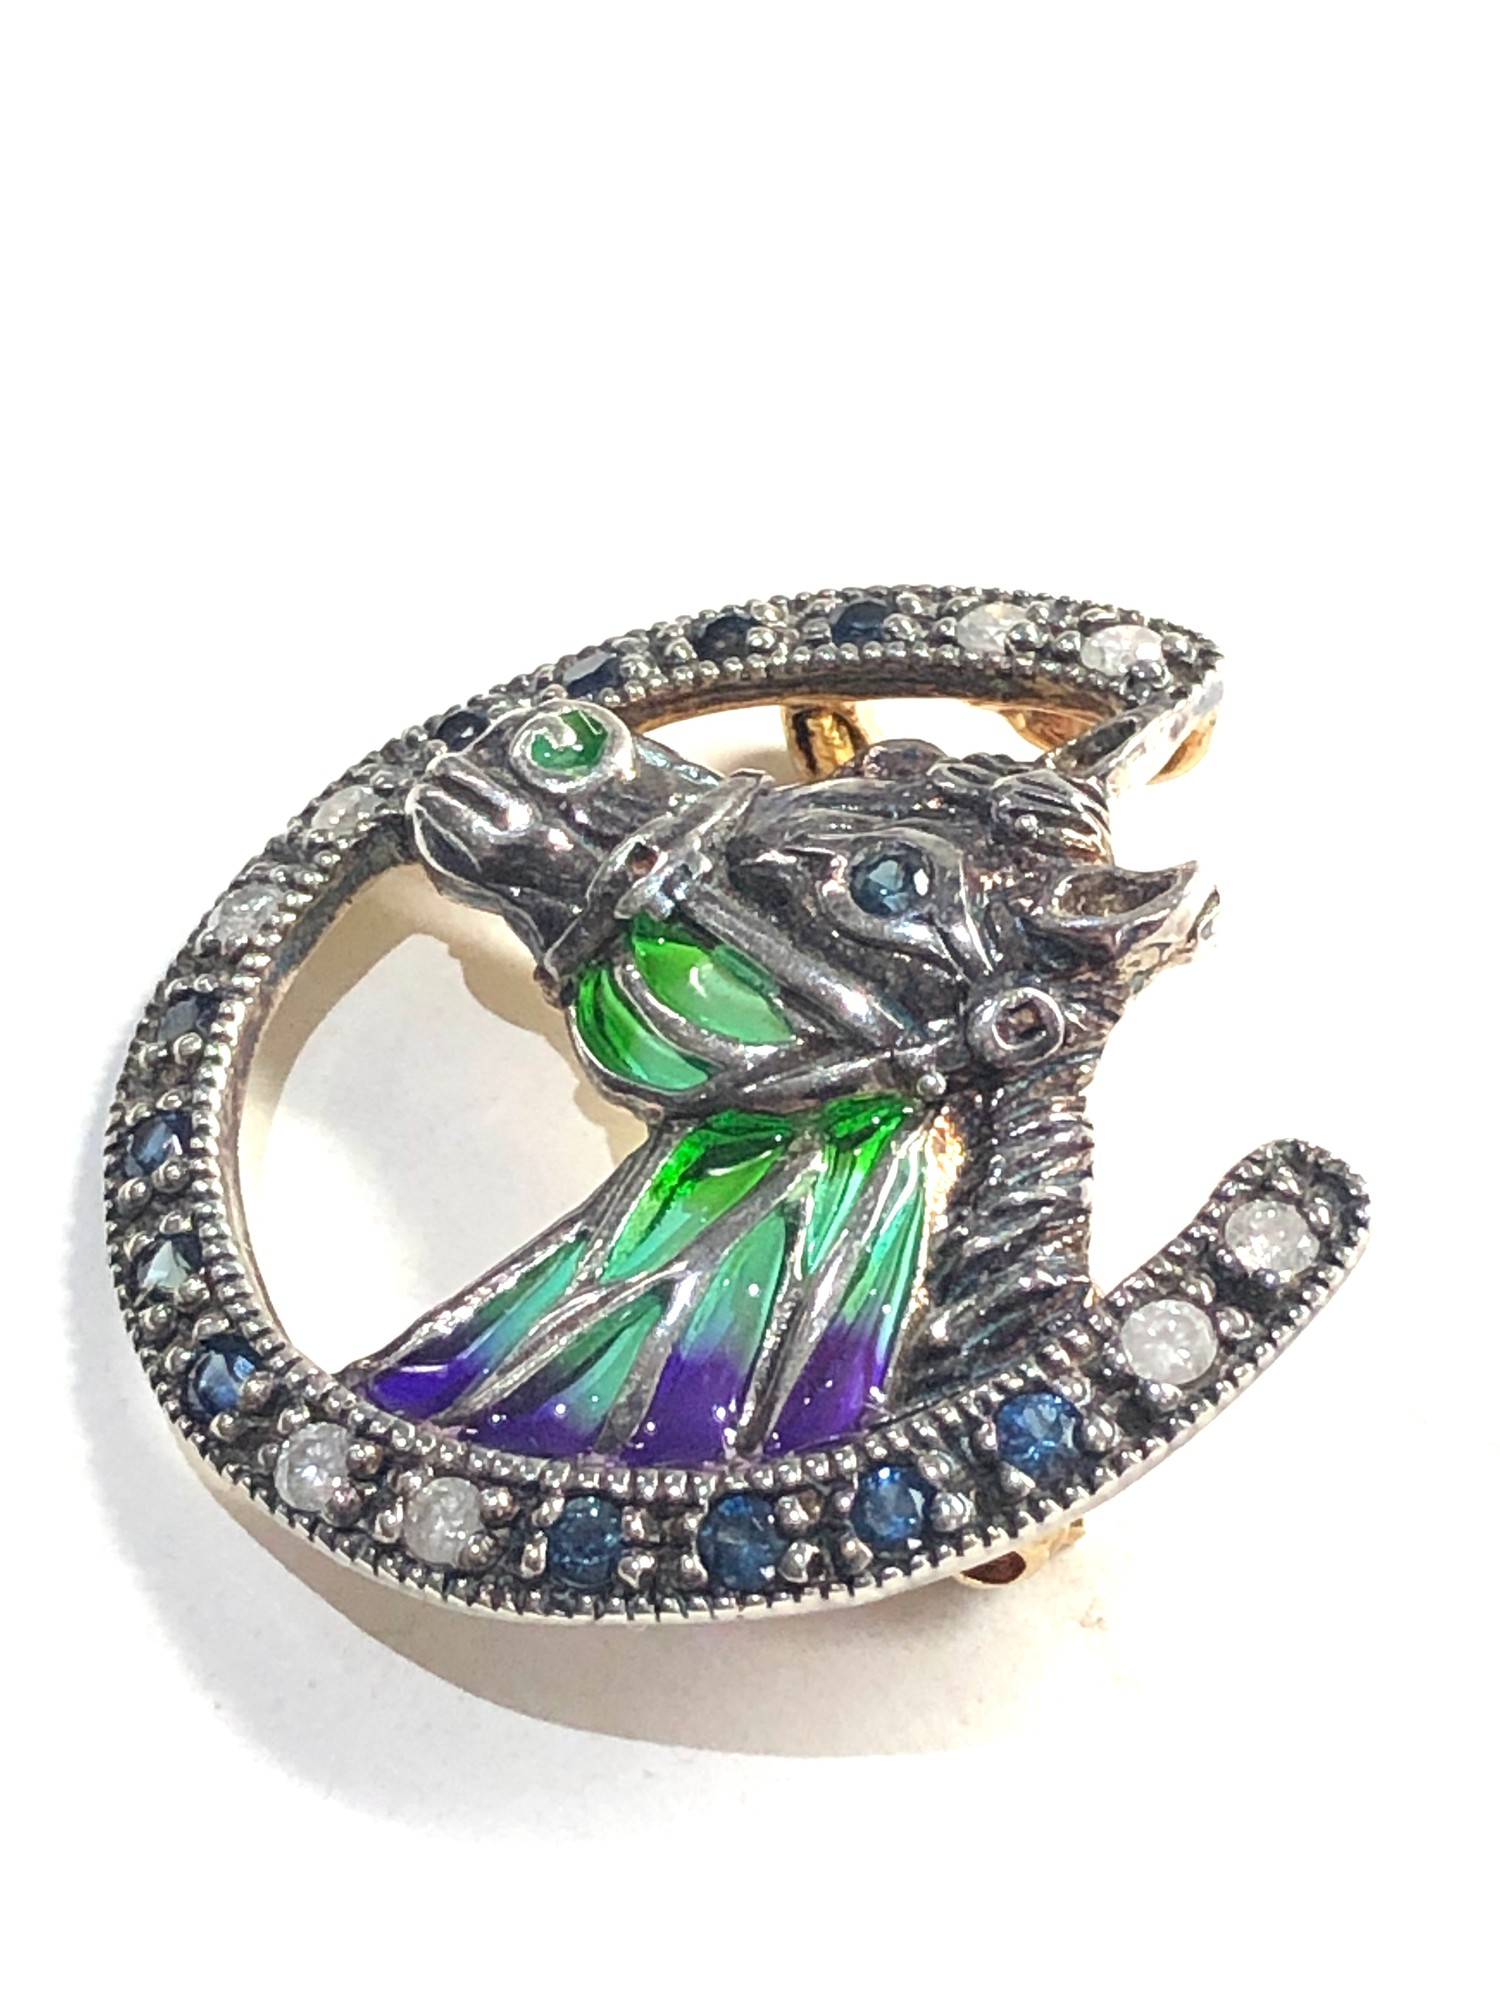 Fine Plique a Jour diamond and sapphire horse brooch gold back measures approx 2.8cm by 2.8cm - Image 2 of 4